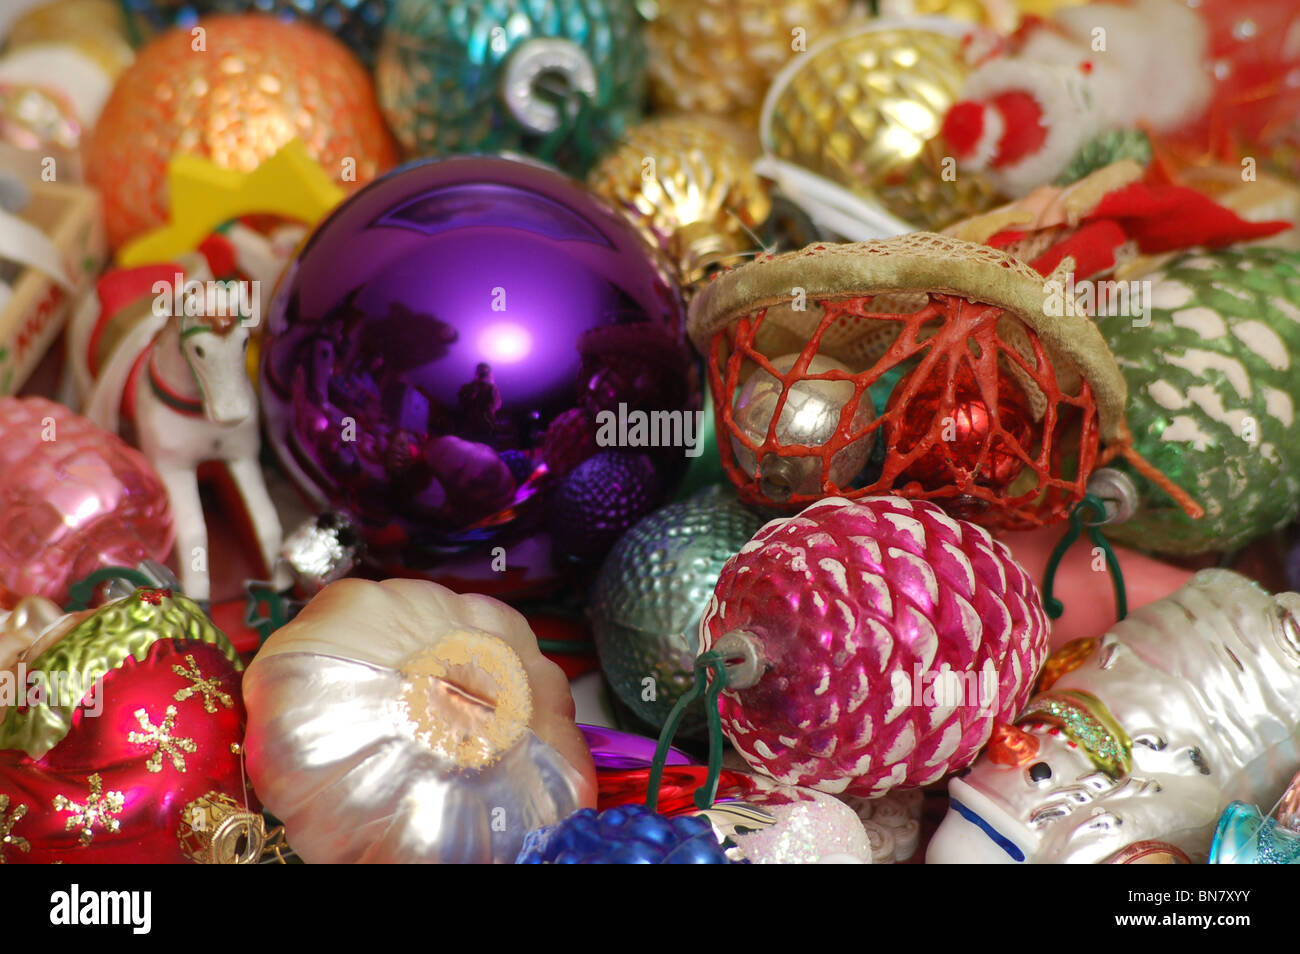 Christmas Ornaments Assortment With Bright Colors Close Up Stock